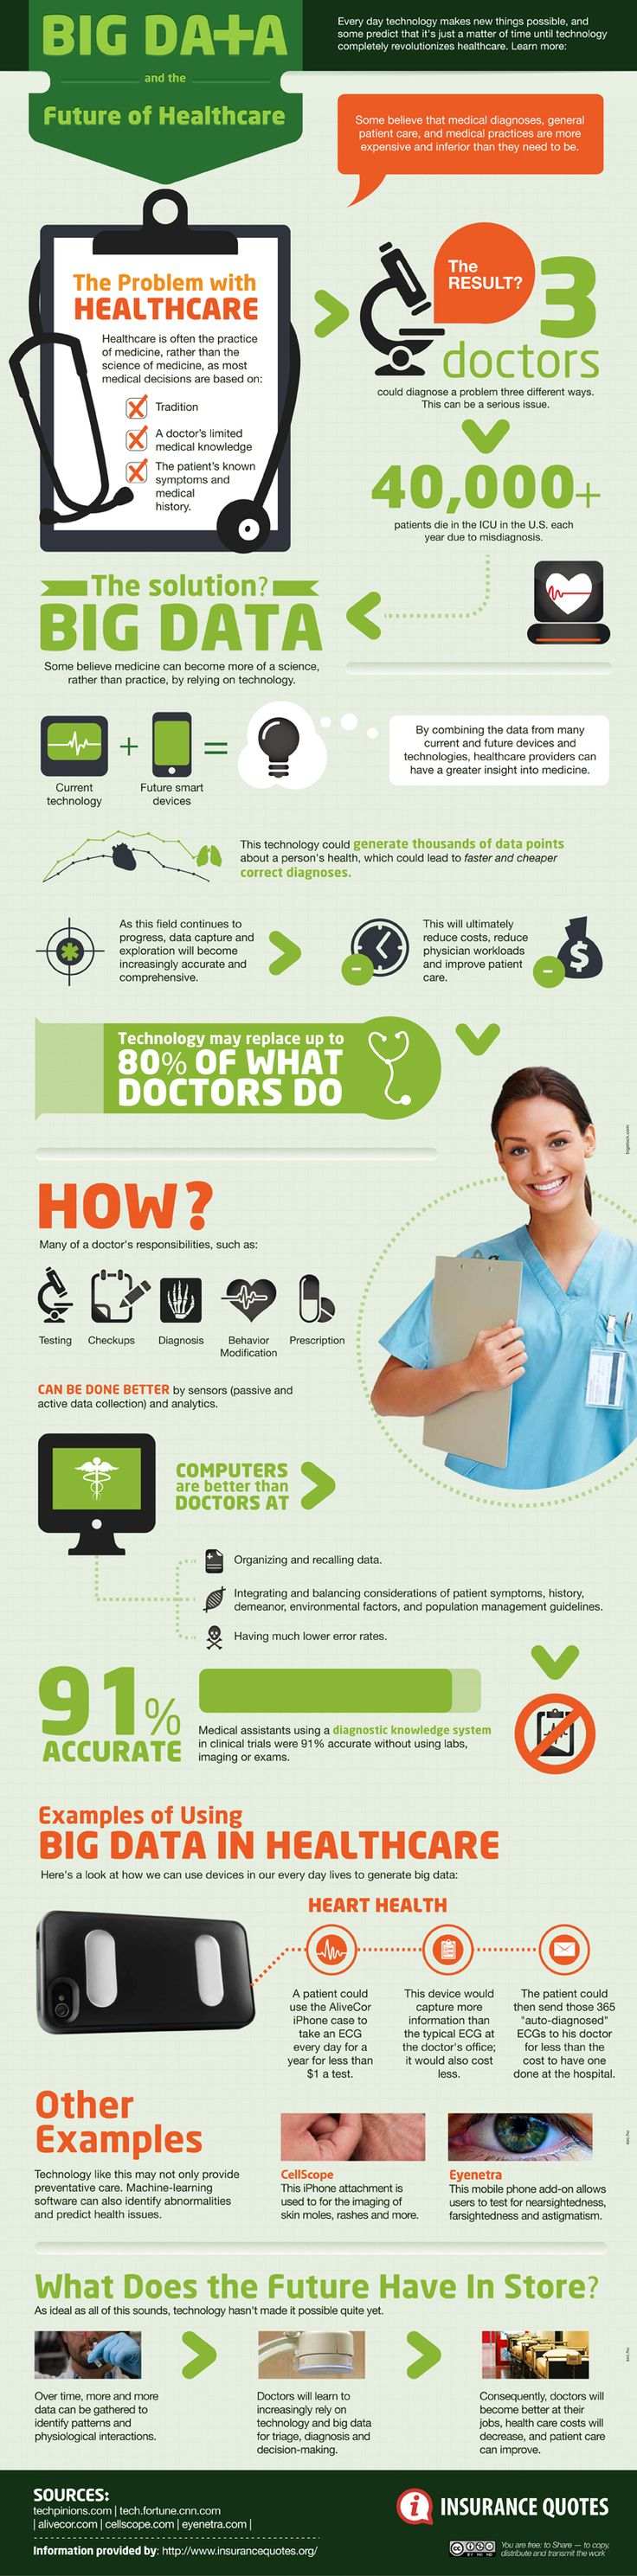 #BigData and the future of healthcare #DigitalHealth #infographic